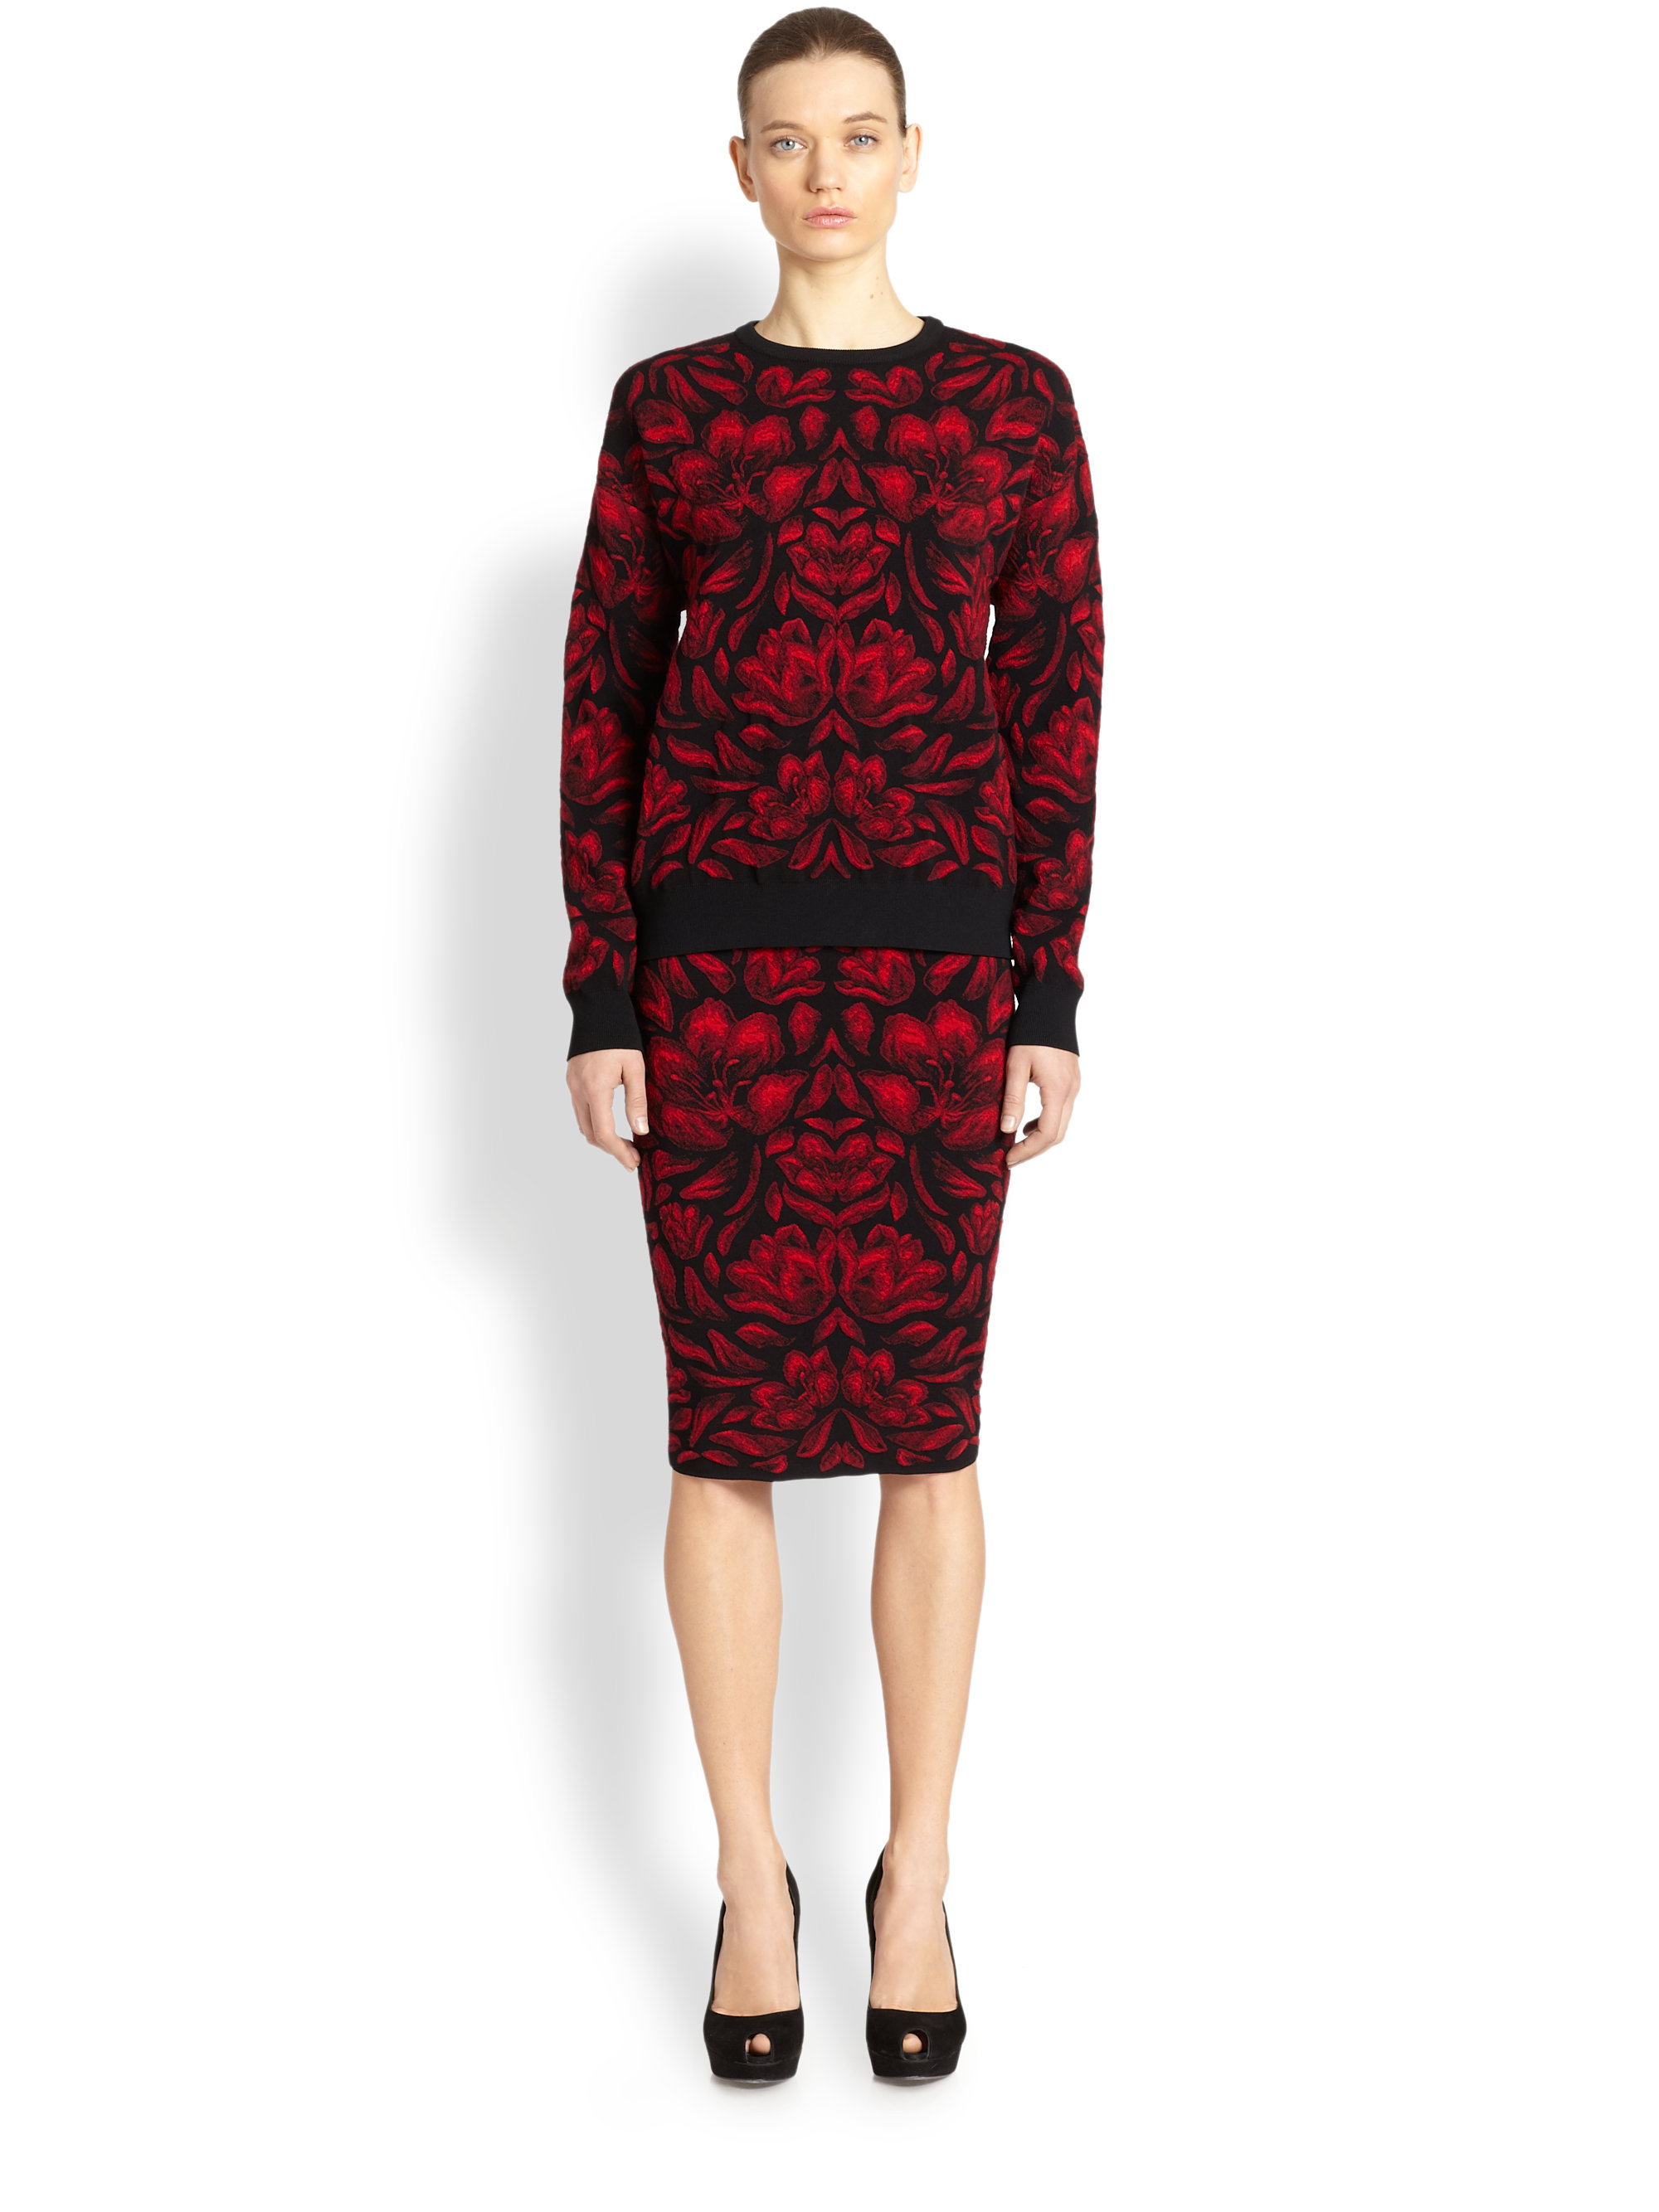 Alexander mcqueen Floral Knit Pencil Skirt in Red | Lyst